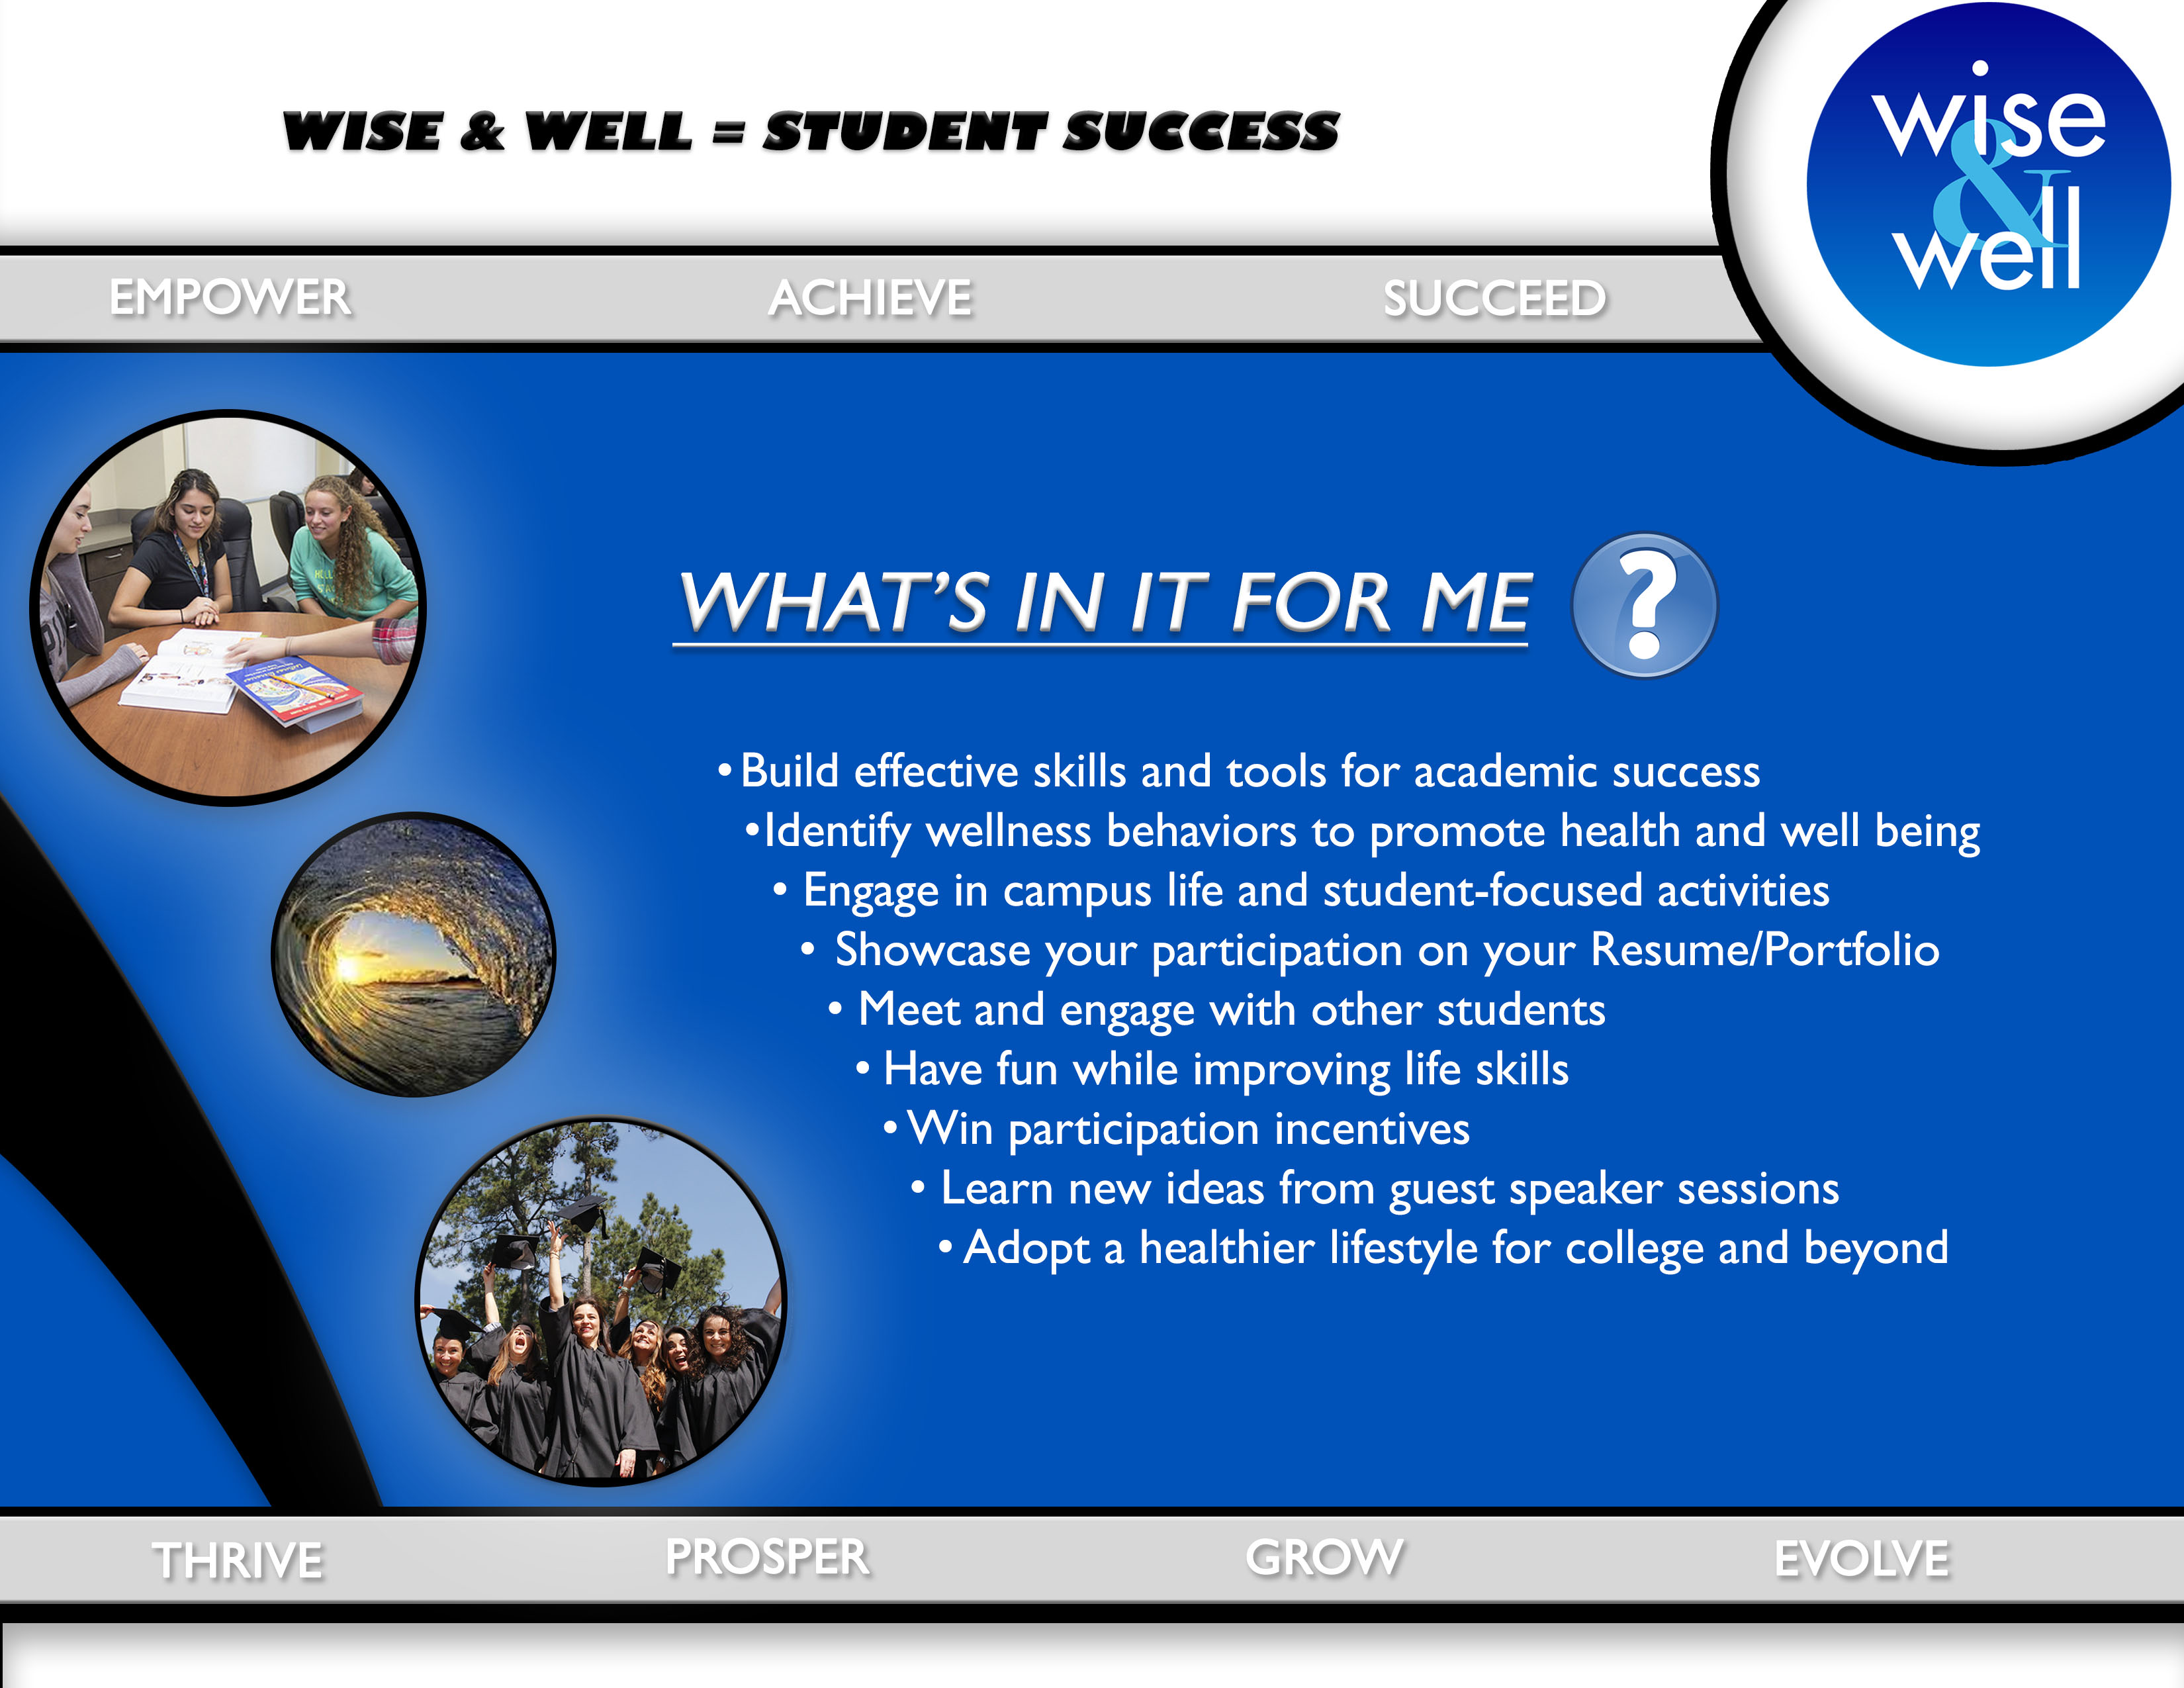 Marketing flyer for Wise & Well program.